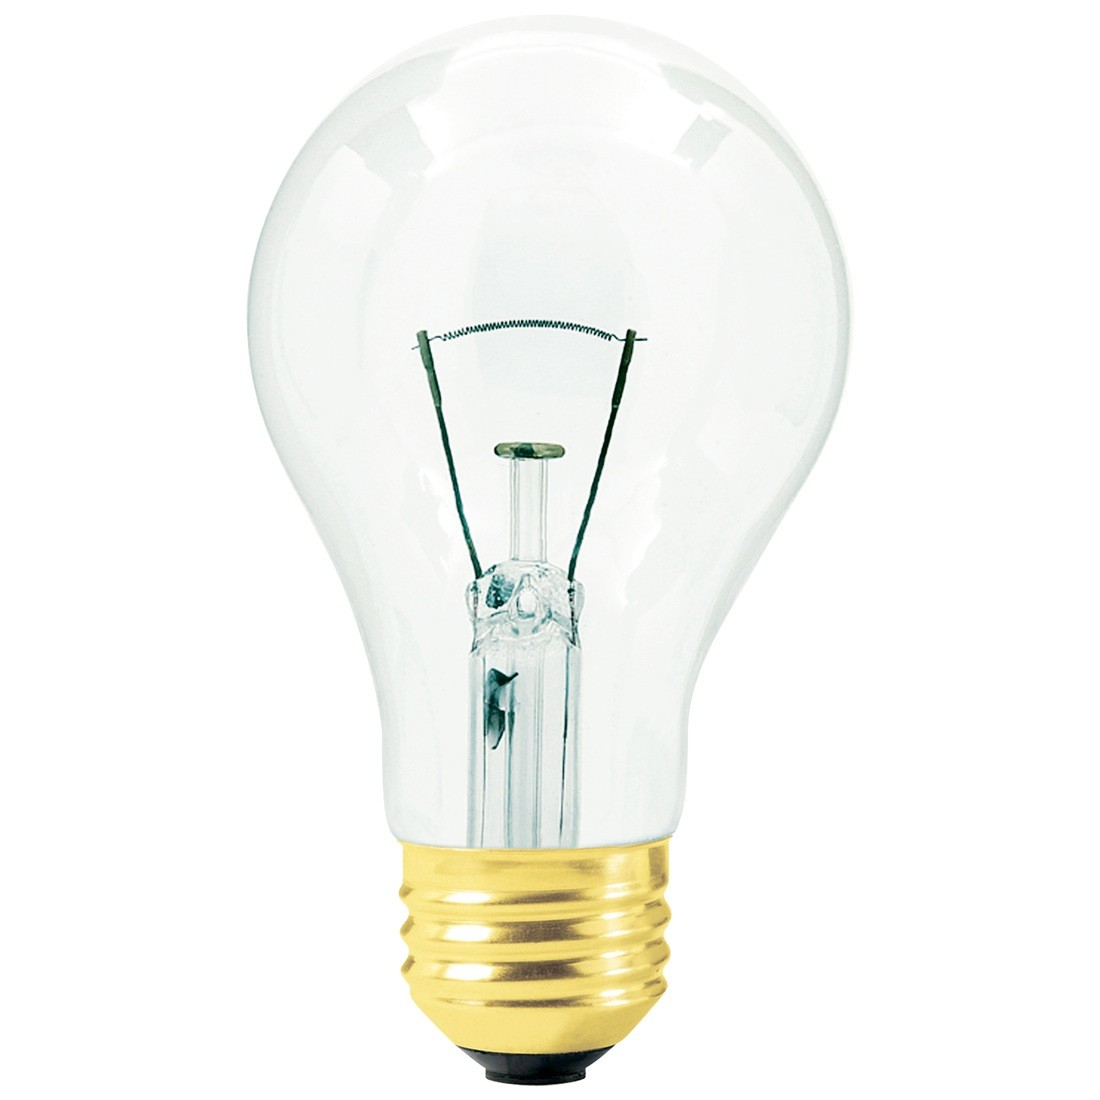 50a1931 50 watt incandescent commercial oven bulb 50 watt a19 incandescent 120v medium e26 base clear commercial oven bulb 50a19 aloadofball Choice Image